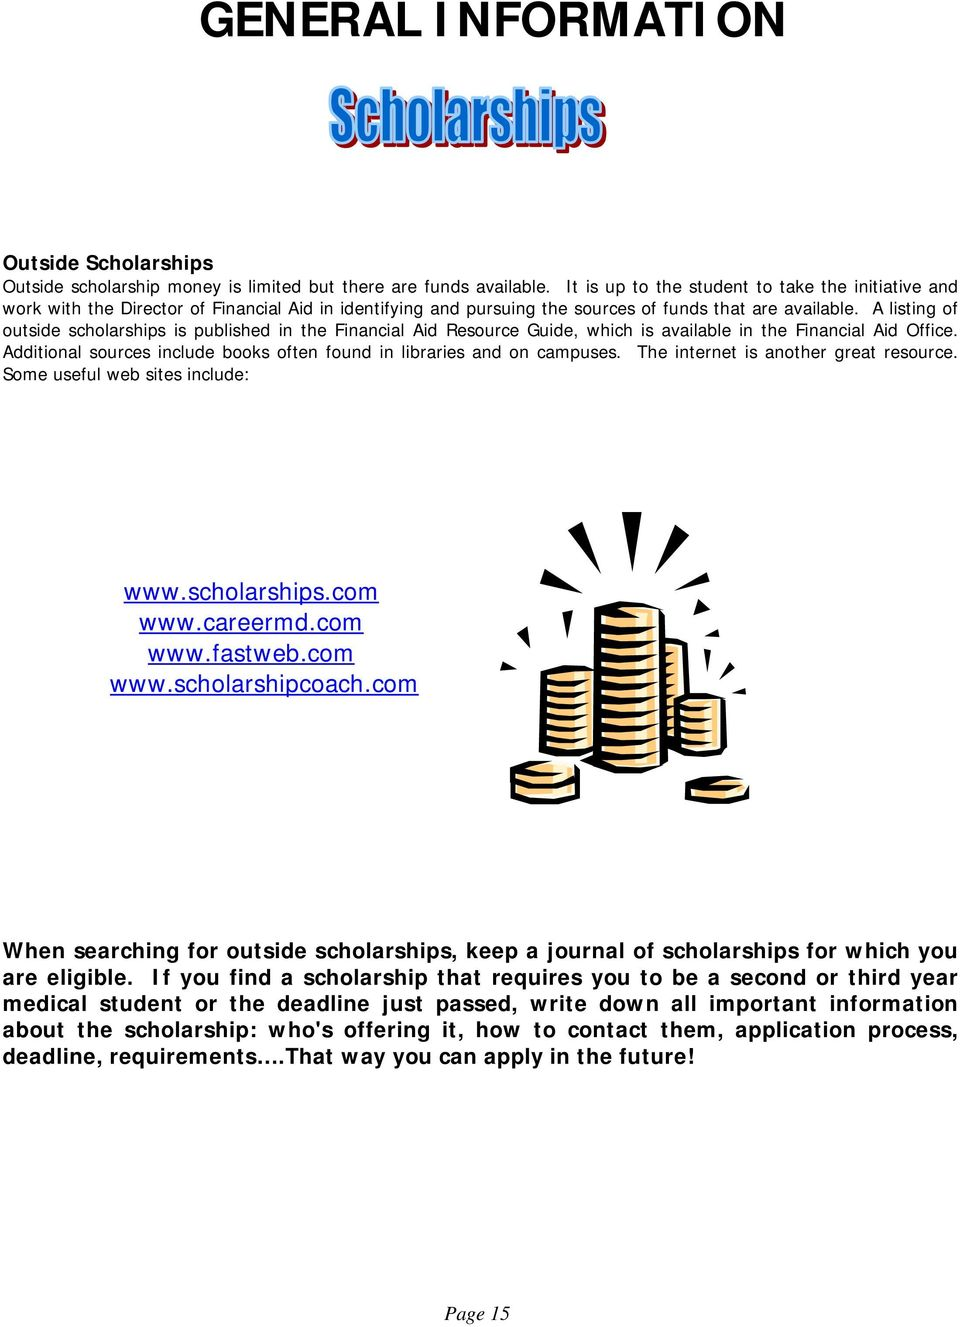 A listing of outside scholarships is published in the Financial Aid Resource Guide, which is available in the Financial Aid Office.